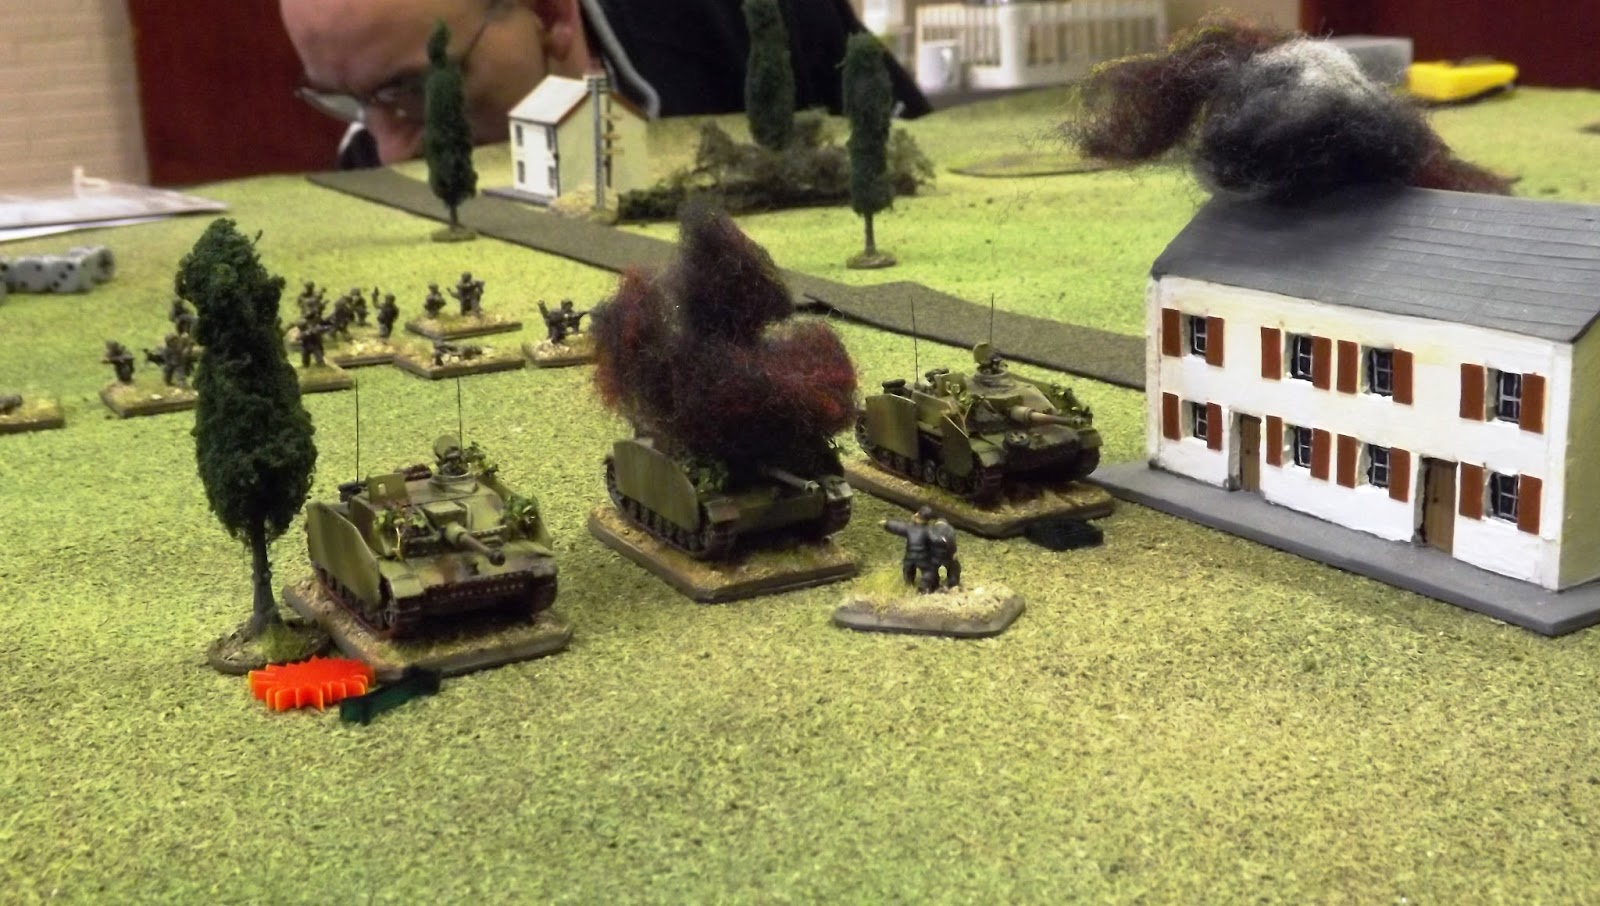 The StuGs feel the effect of the 6lbr with the one in the centre knocked out, the one on the left immobilised and shocked and the the right most vehicle with a damaged main gun.